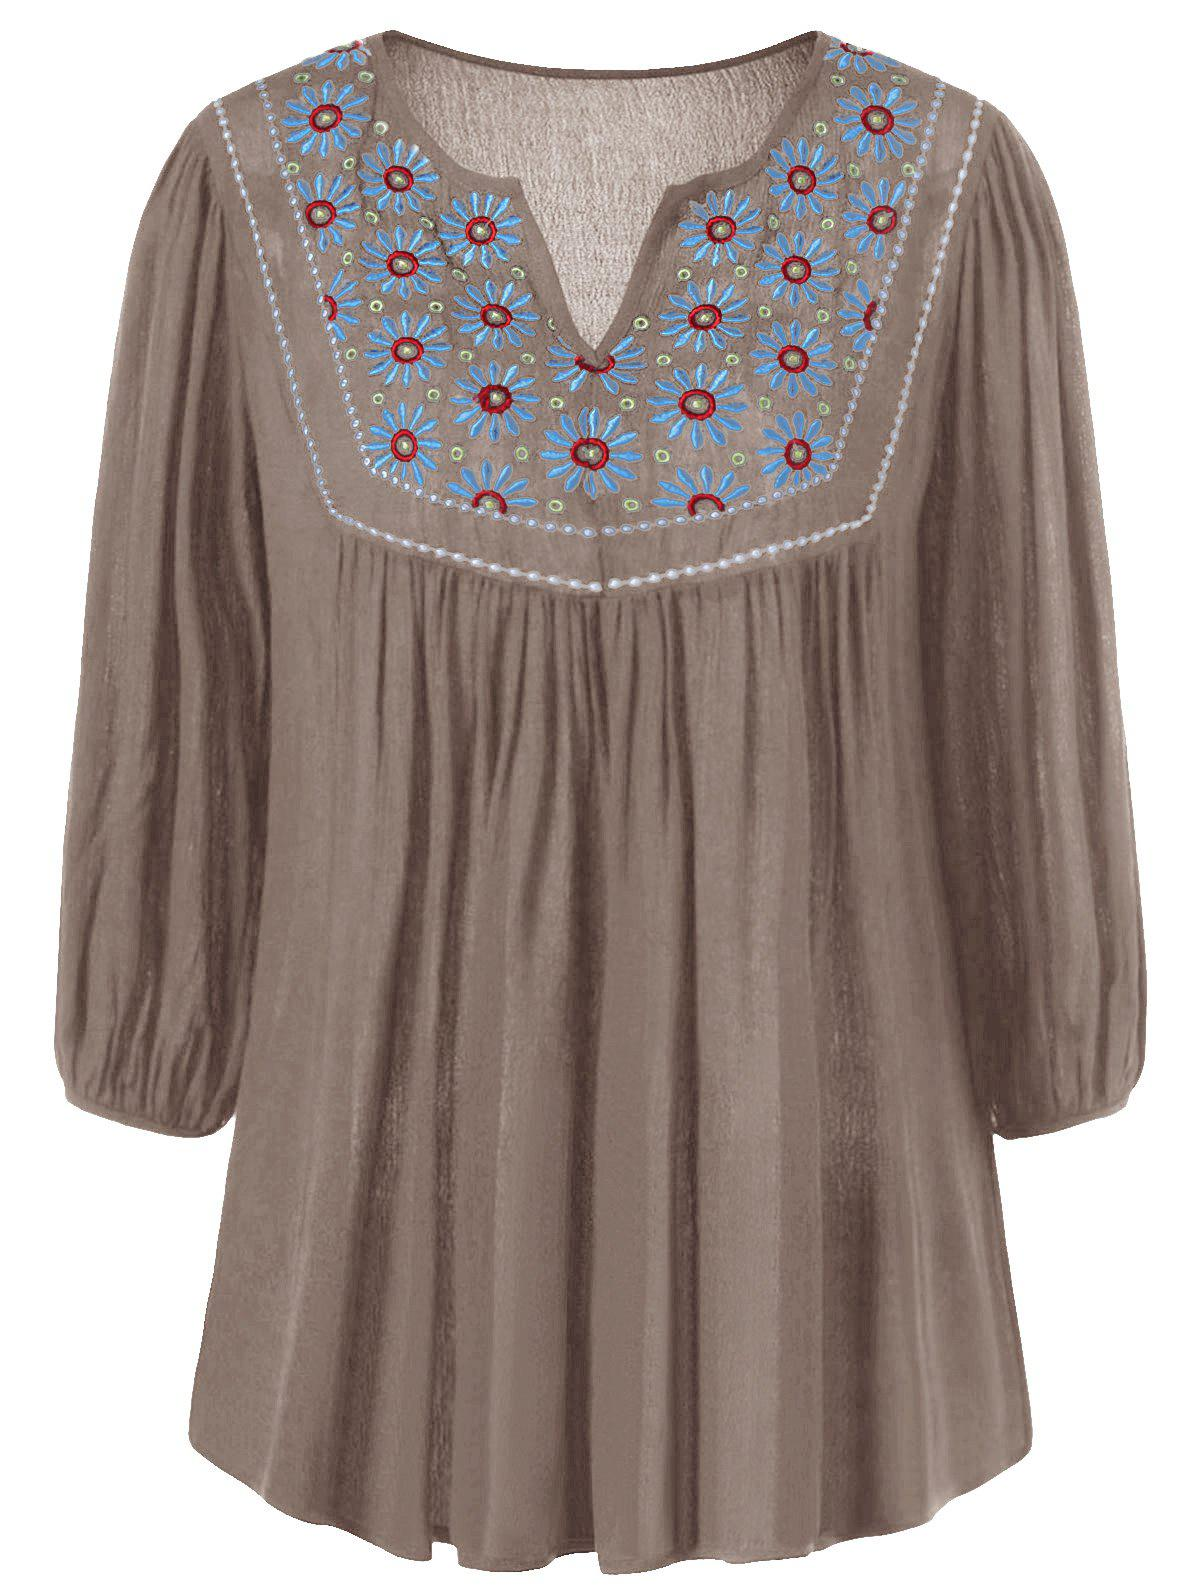 Floral Embroidered Maxican Peasant Blouse - KHAKI S